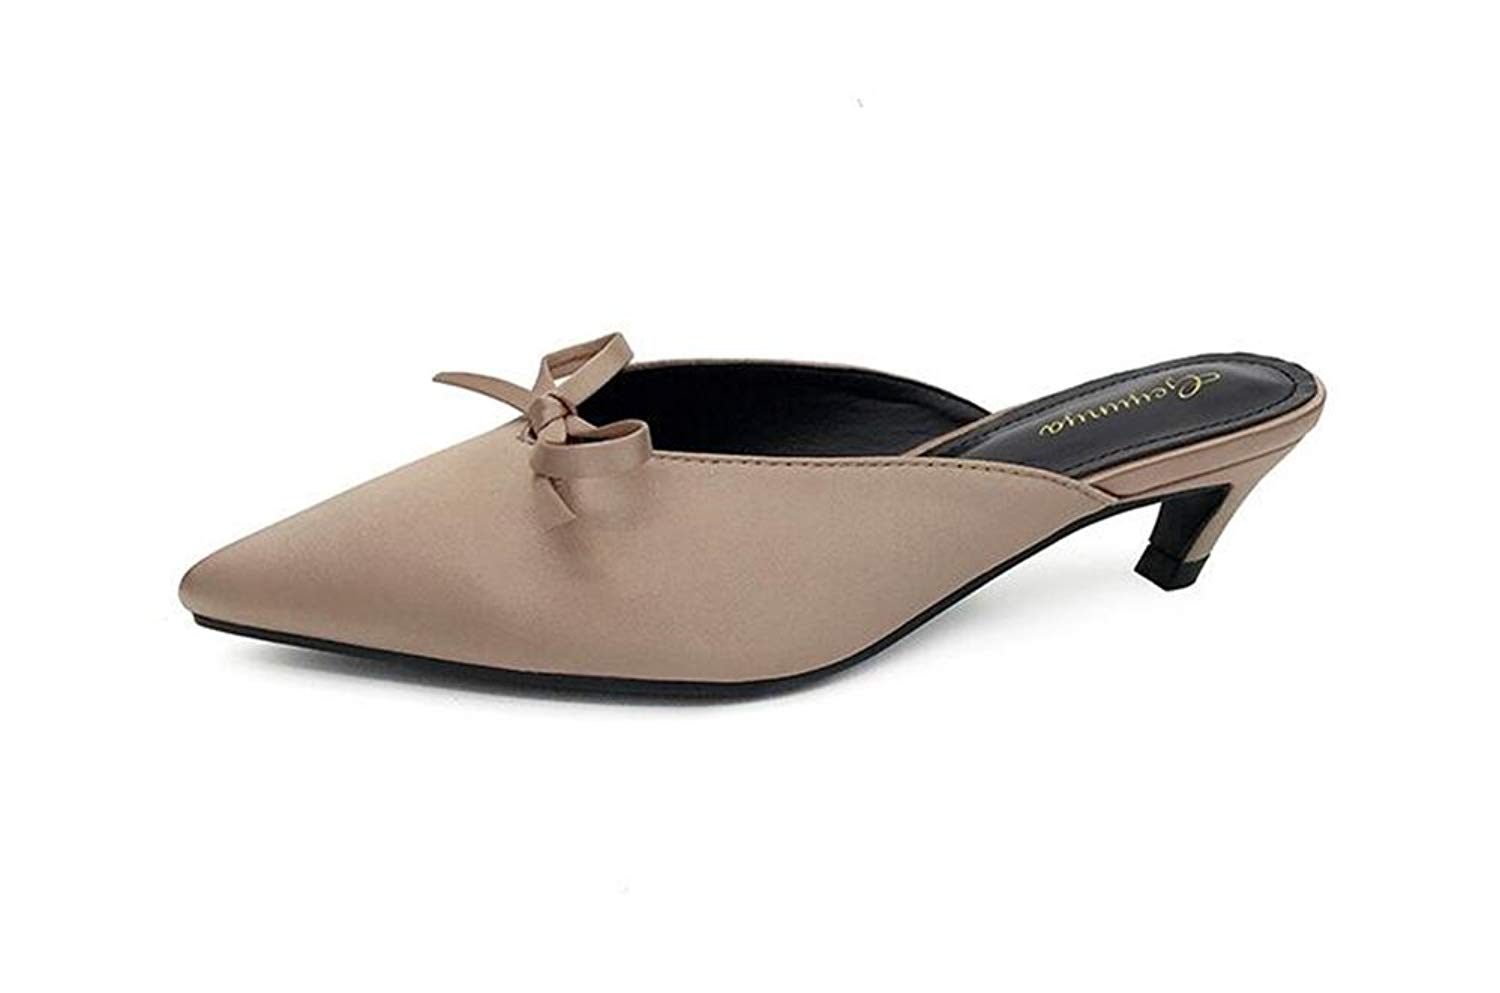 9c1ef28a1e3 Get Quotations · COLOV Women s Bow Adorned Kitten Heel Handcrafted Suede  Mule